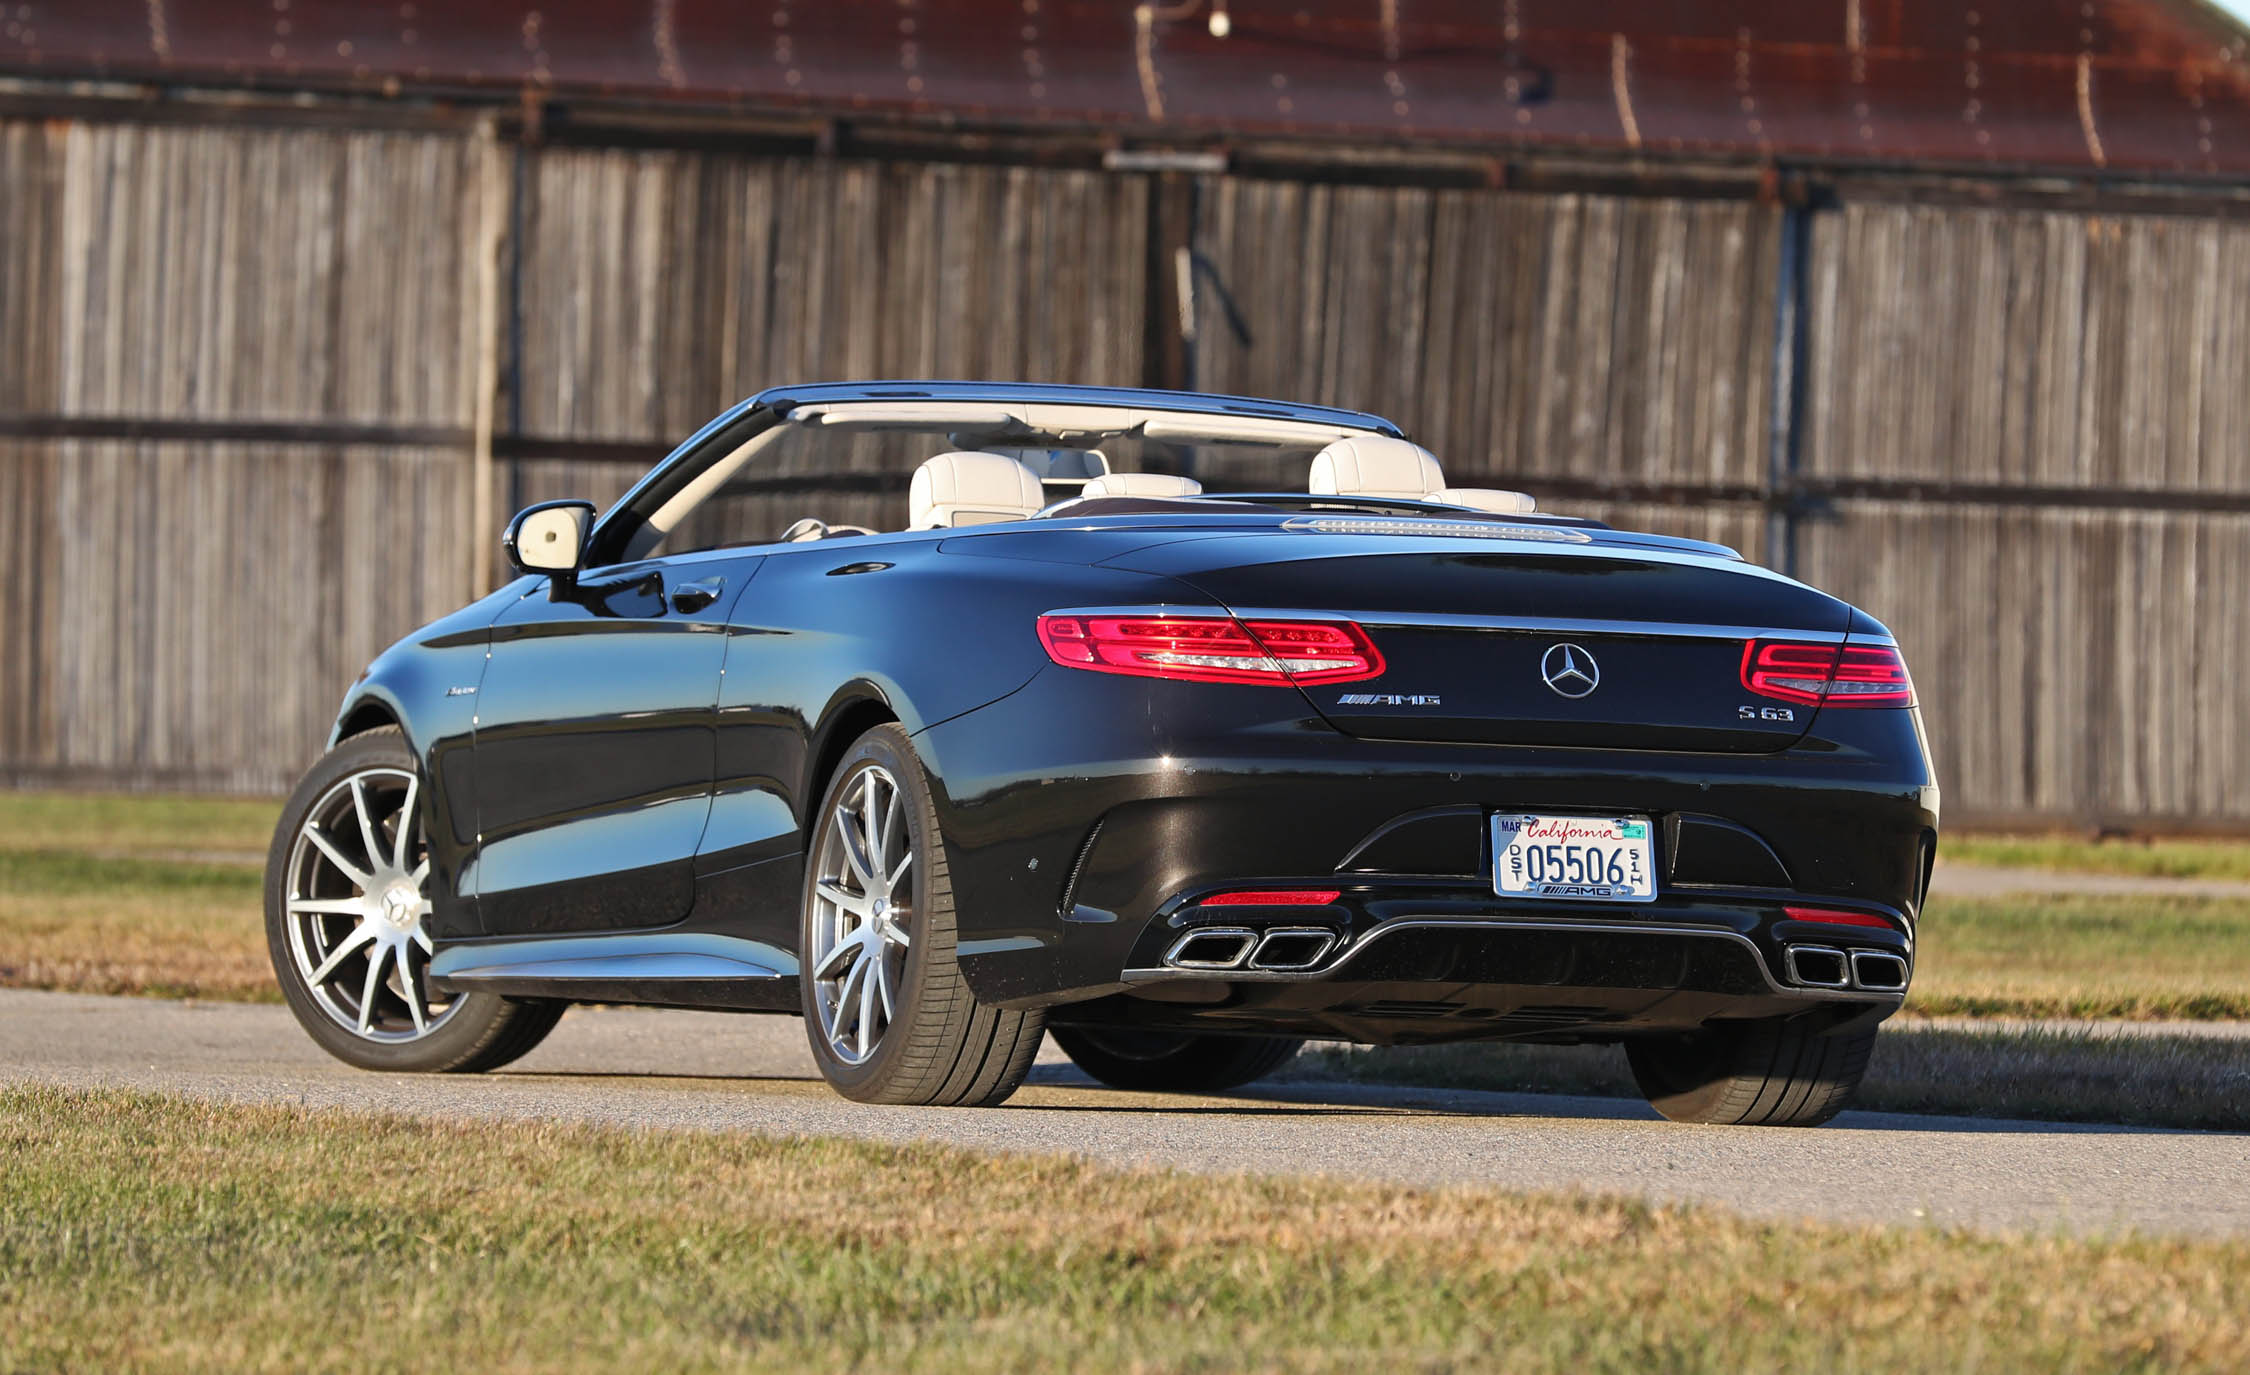 2017 Mercedes Amg S63 Cabriolet Exterior Rear (Photo 6 of 38)